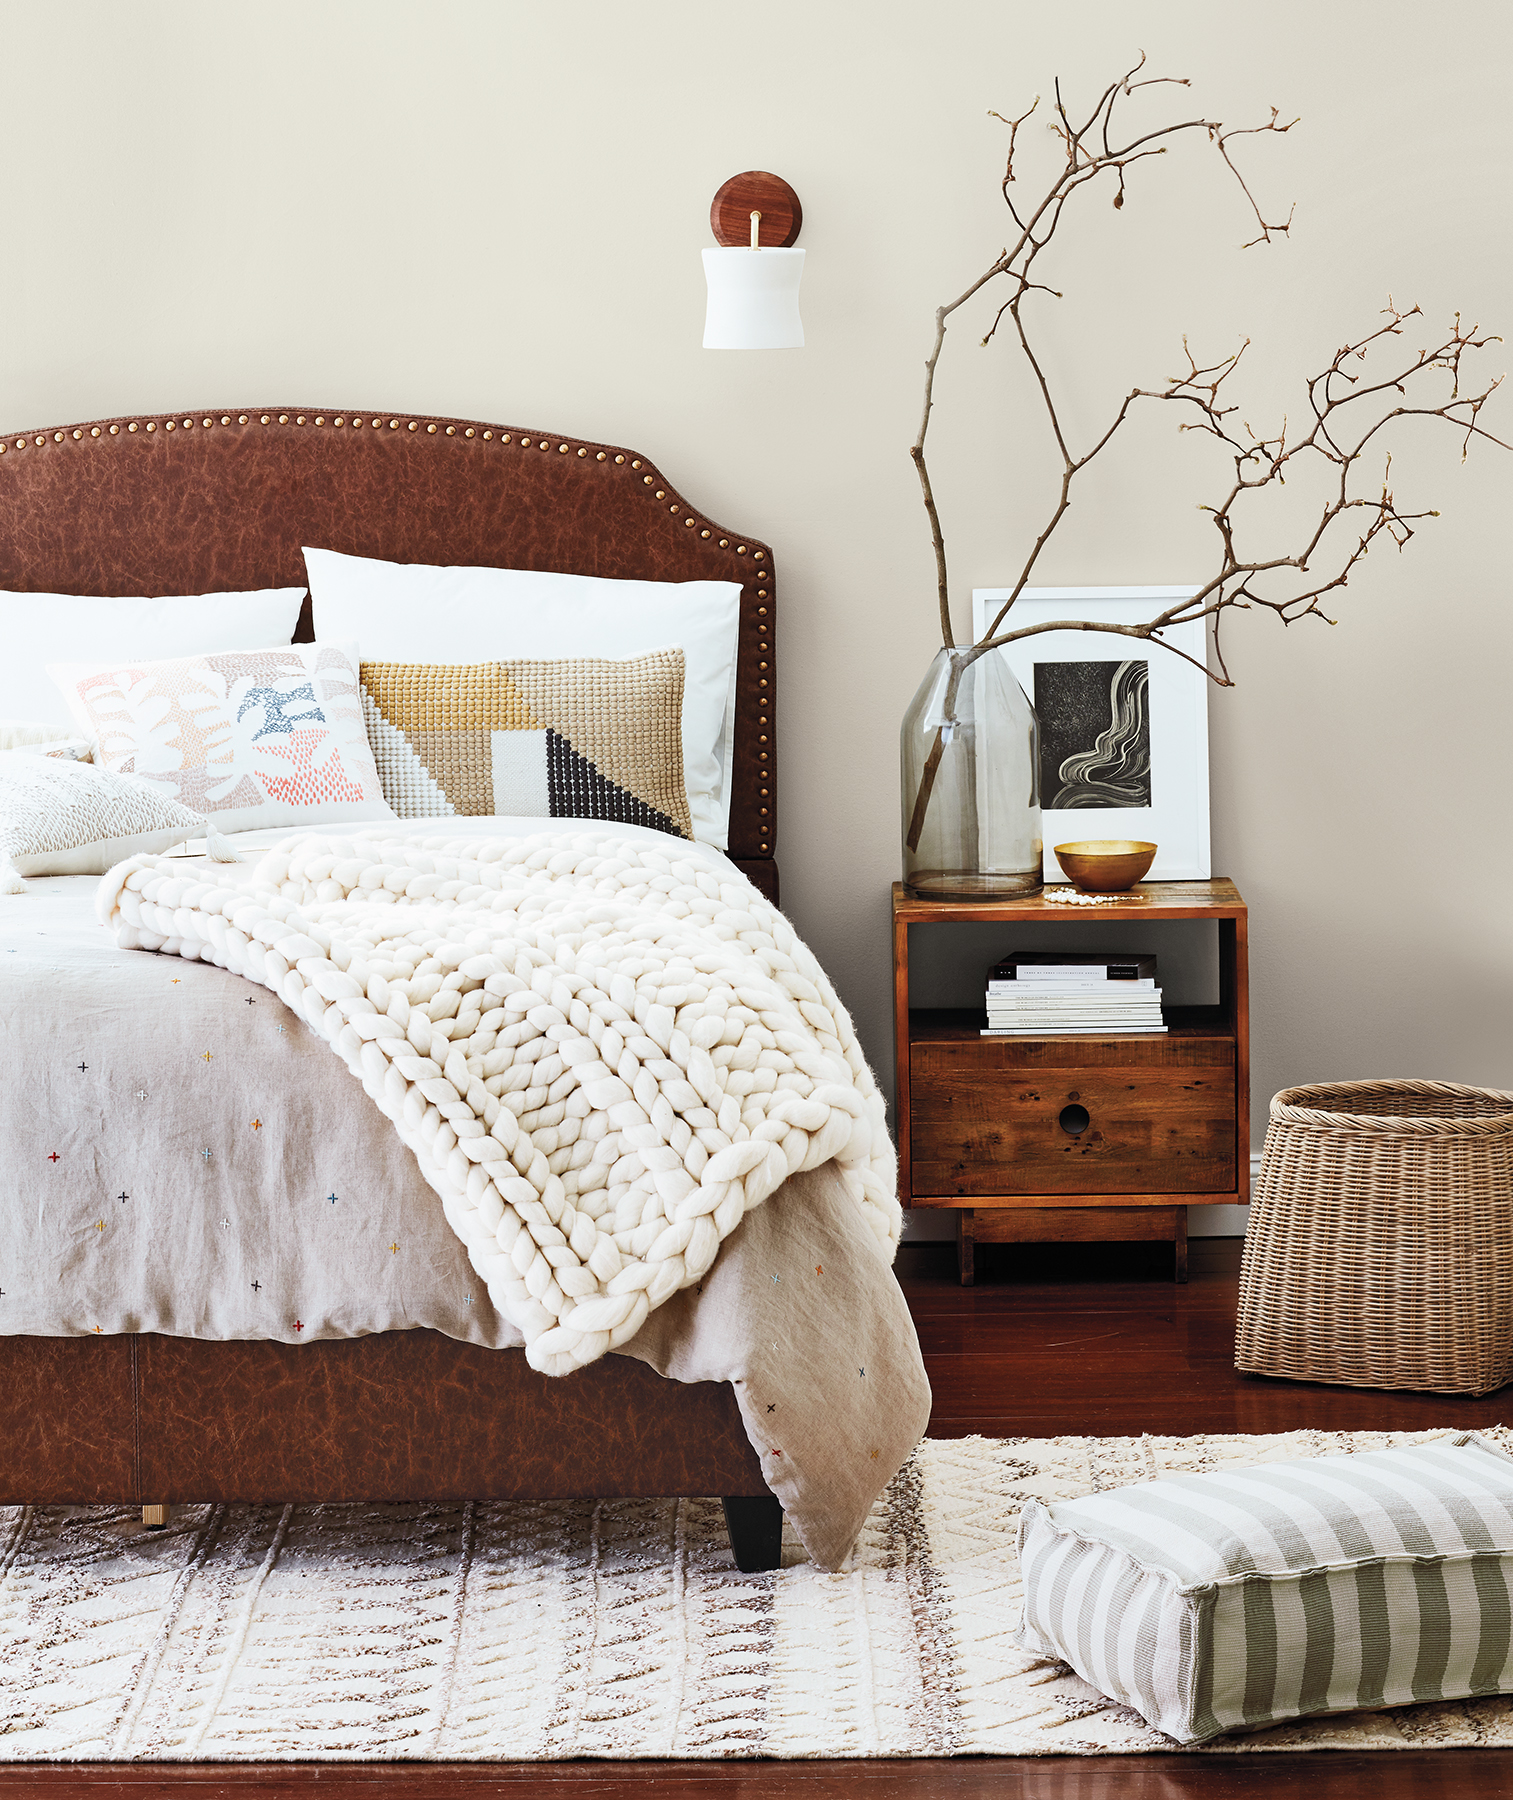 Bedroom with natural materials, soft warm colors